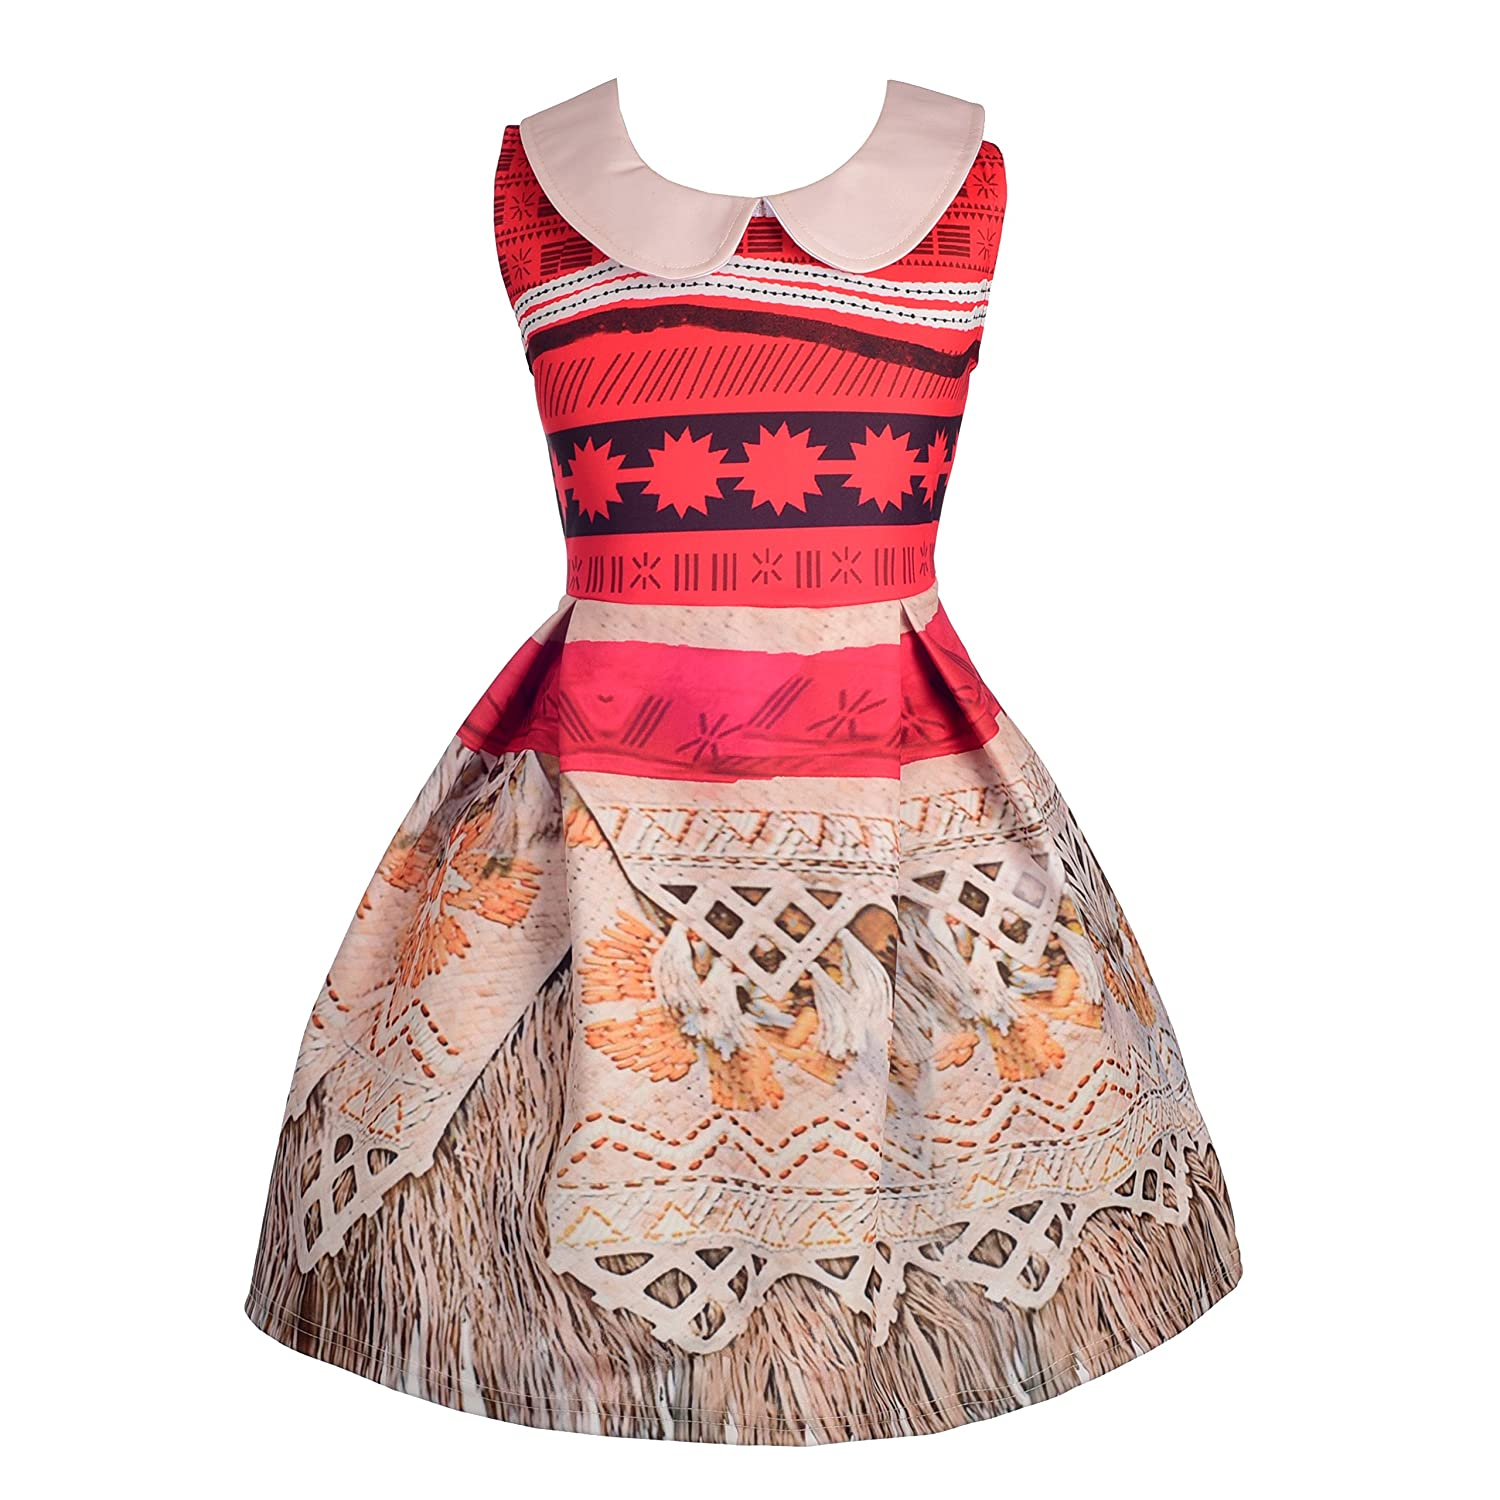 Attractive Amazon.com: Dressy Daisy Girls Dress Up Princess Moana Costumes Adventure Outfit  Halloween Costume: Clothing